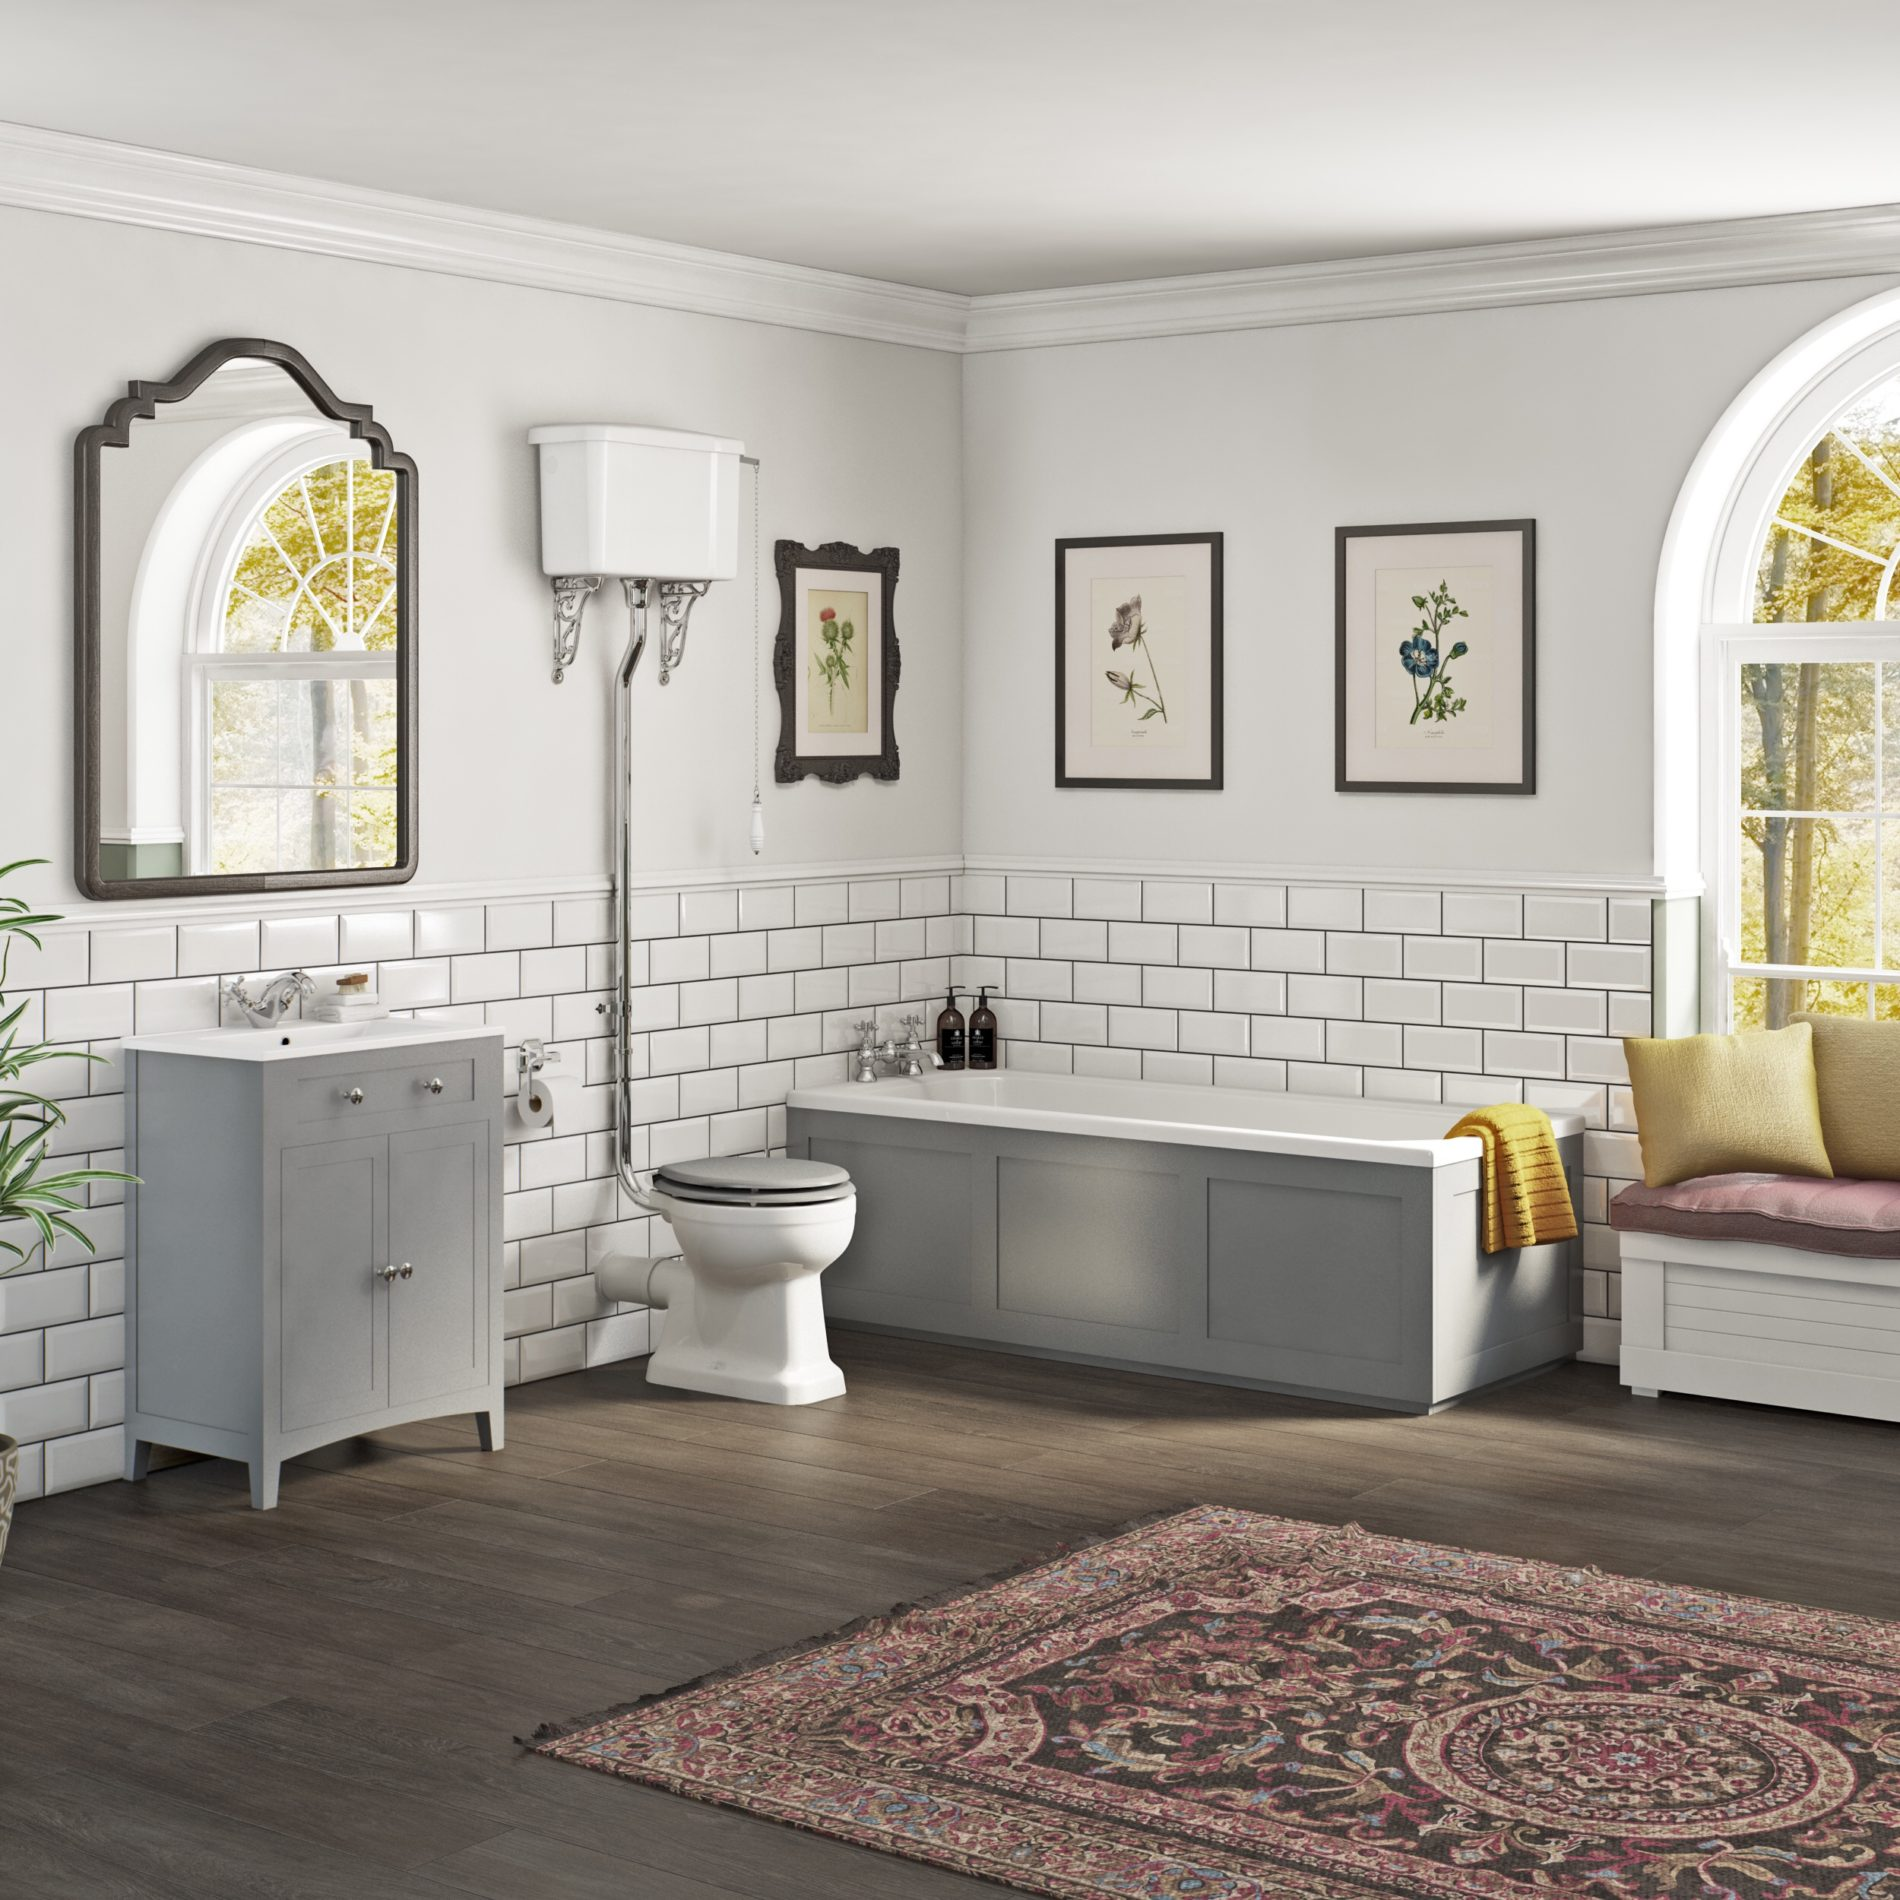 (AD) Nifty shades of grey: Adding colour to your bathroom